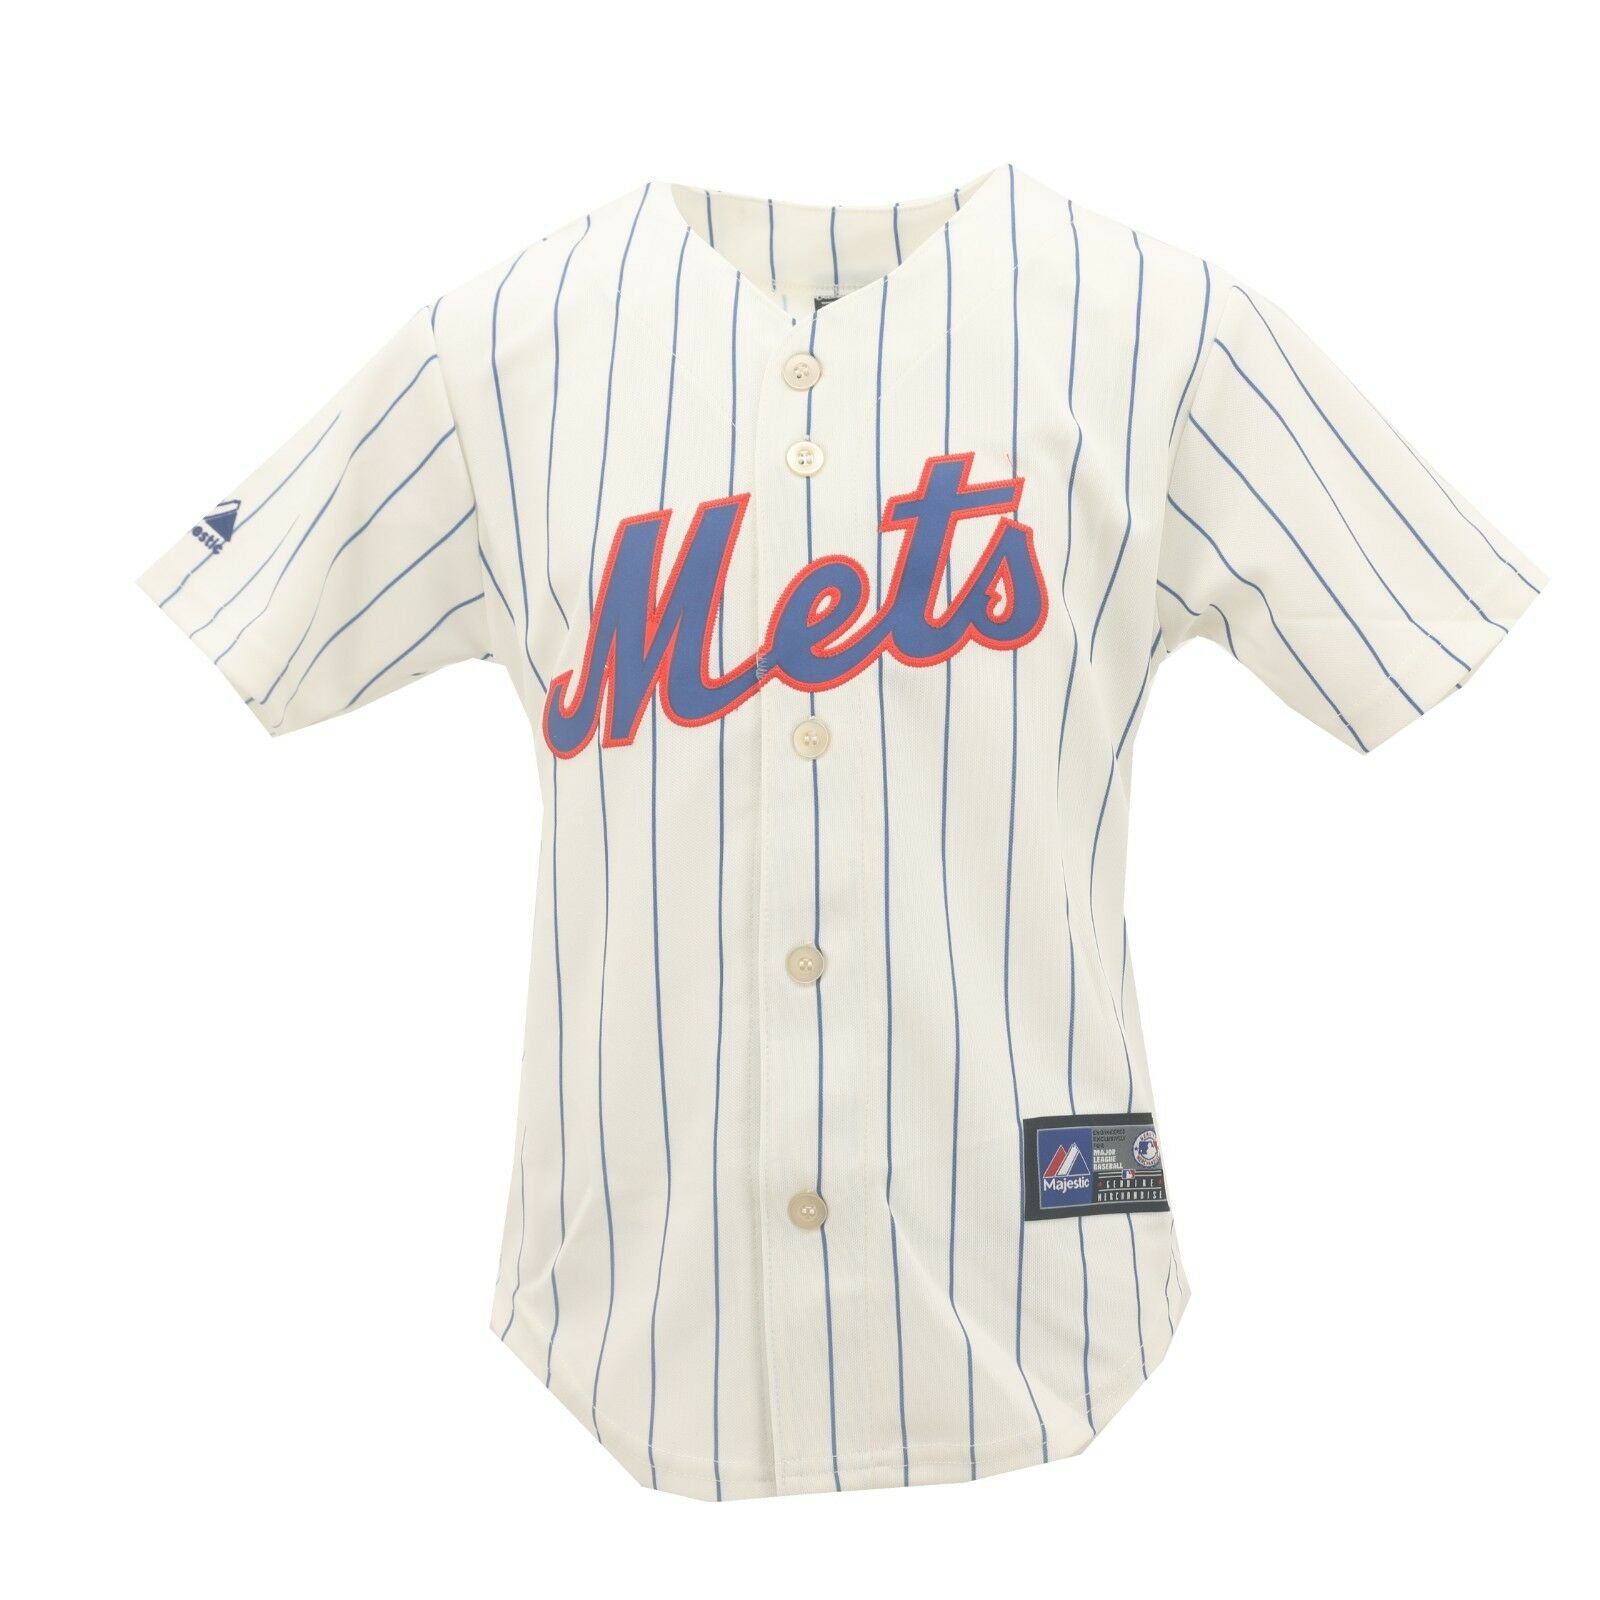 the latest de106 26d1d Details about New York Mets Genuine MLB Majestic Kids Youth Girls Size  David Wright Jersey New